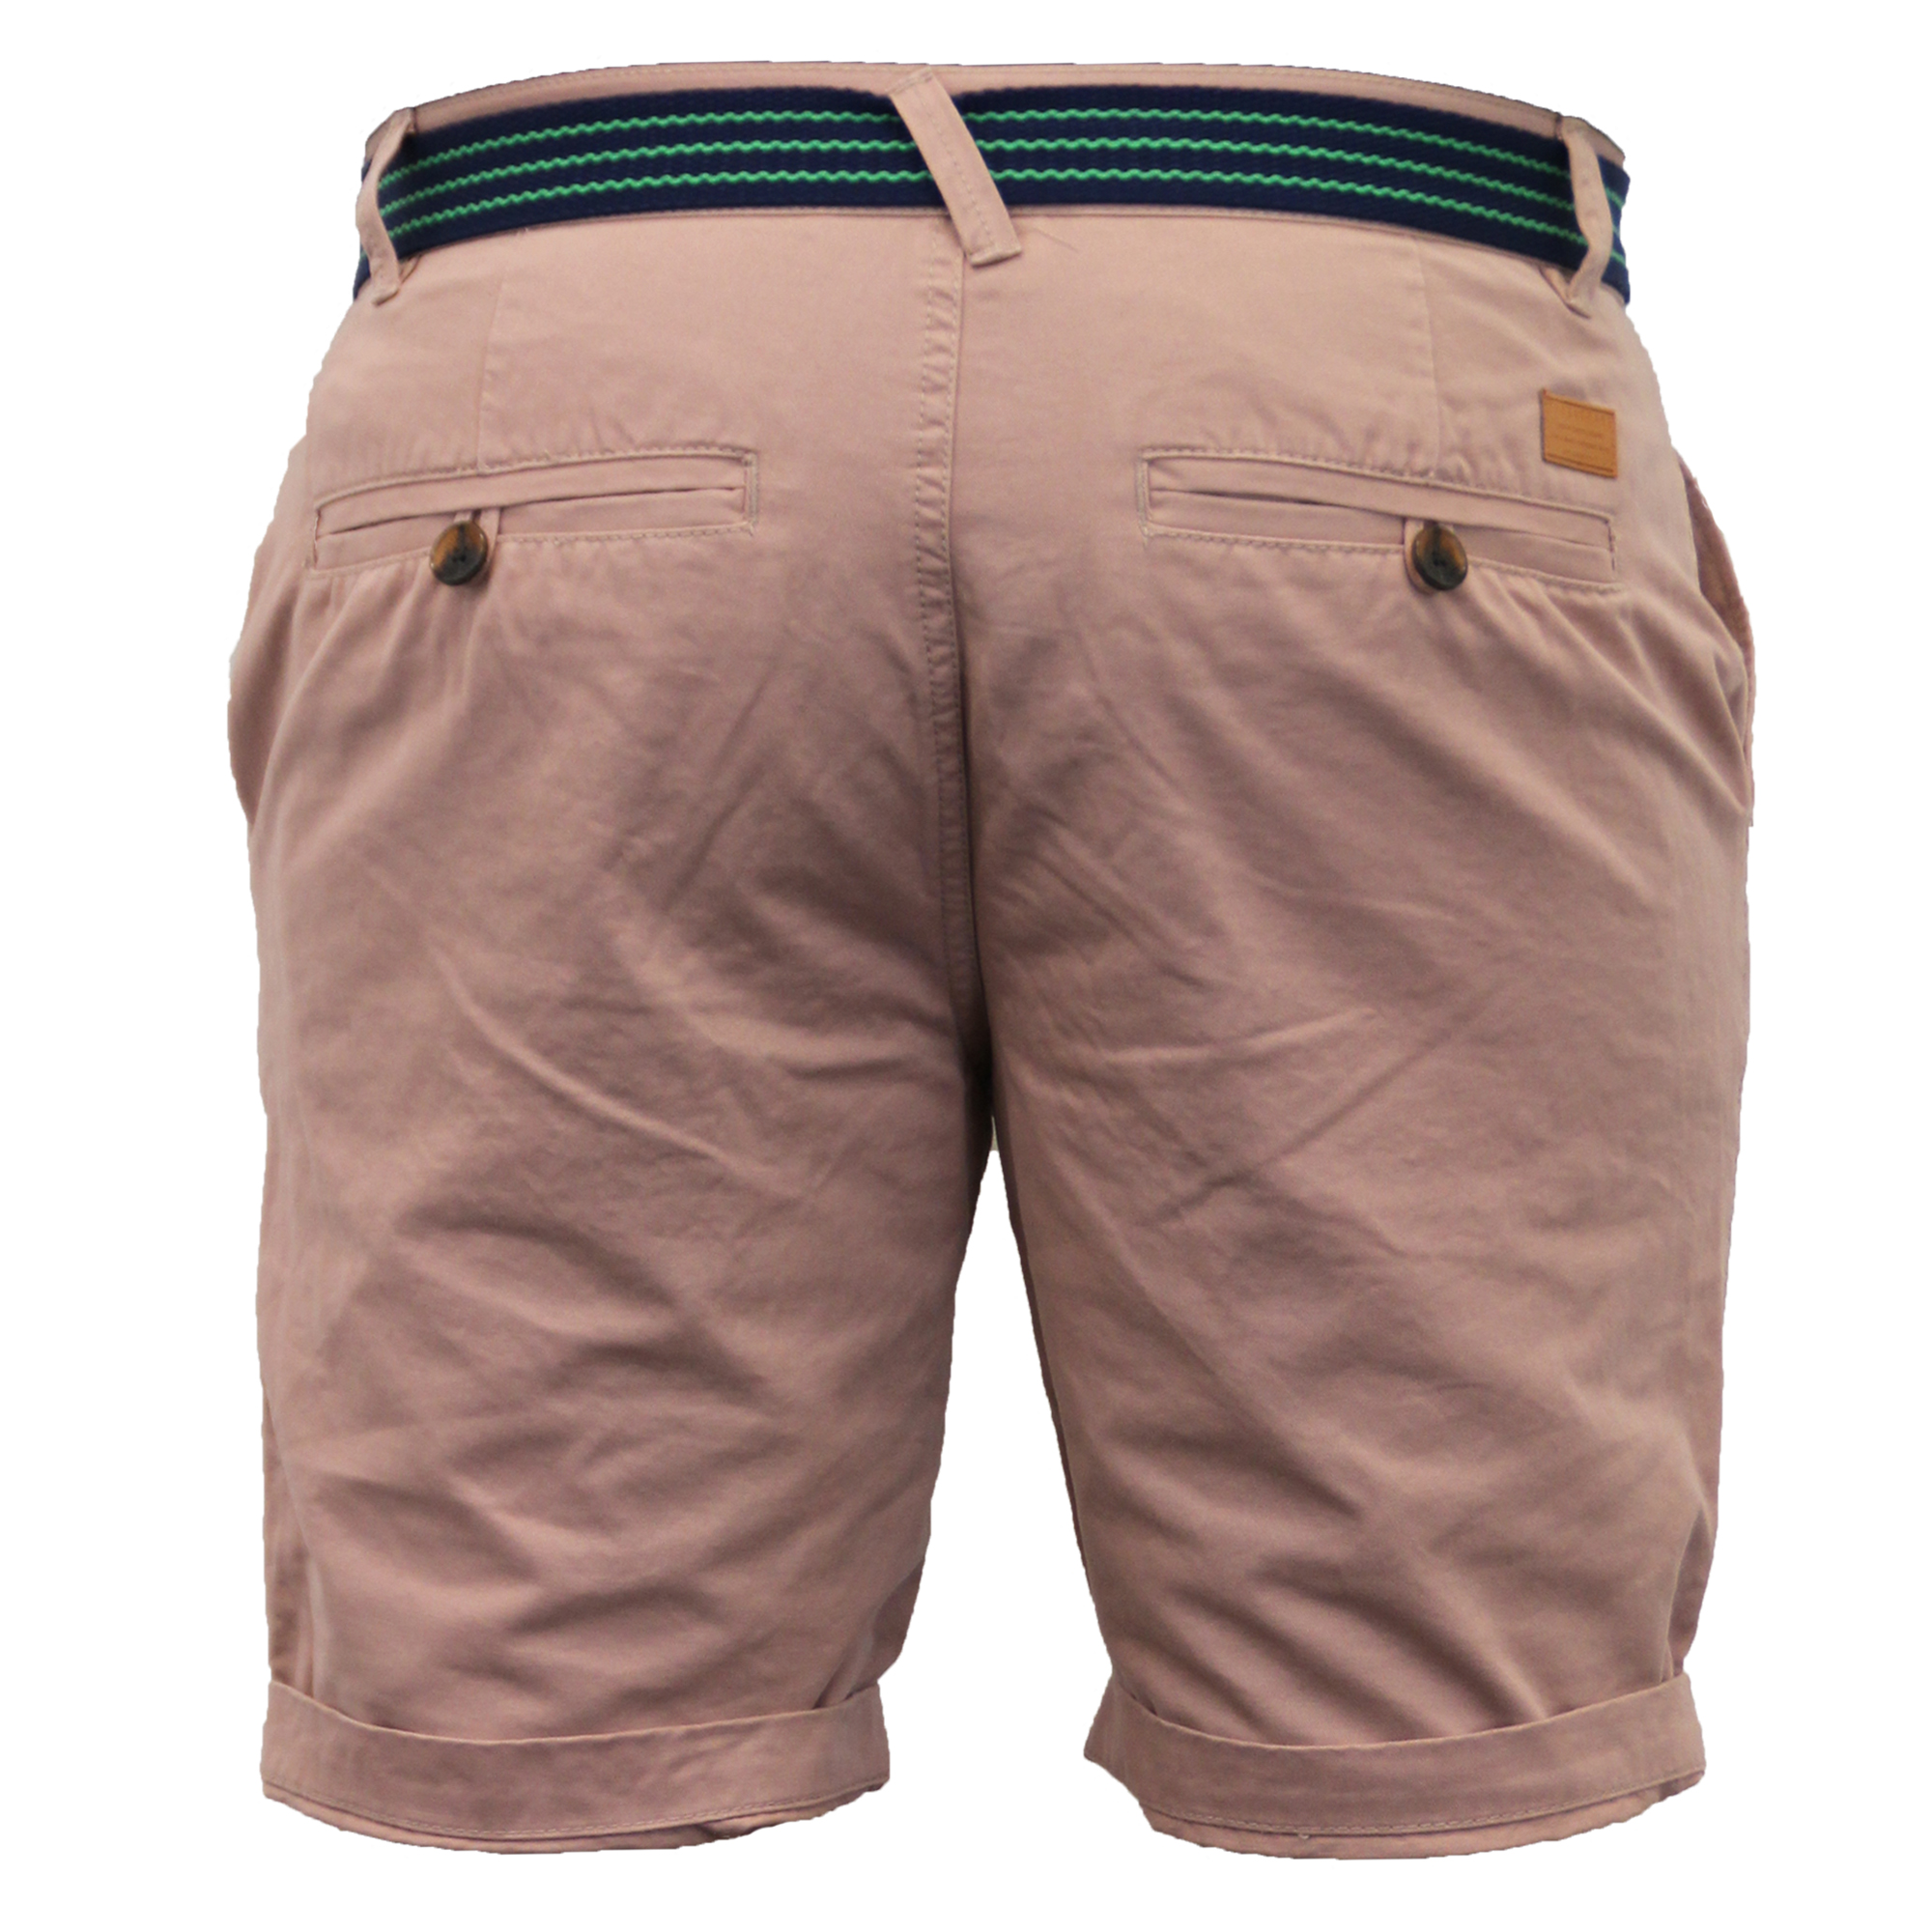 Mens-Chino-Shorts-Threadbare-Belted-Westace-Pants-Knee-Length-Roll-Up-Summer-New thumbnail 11